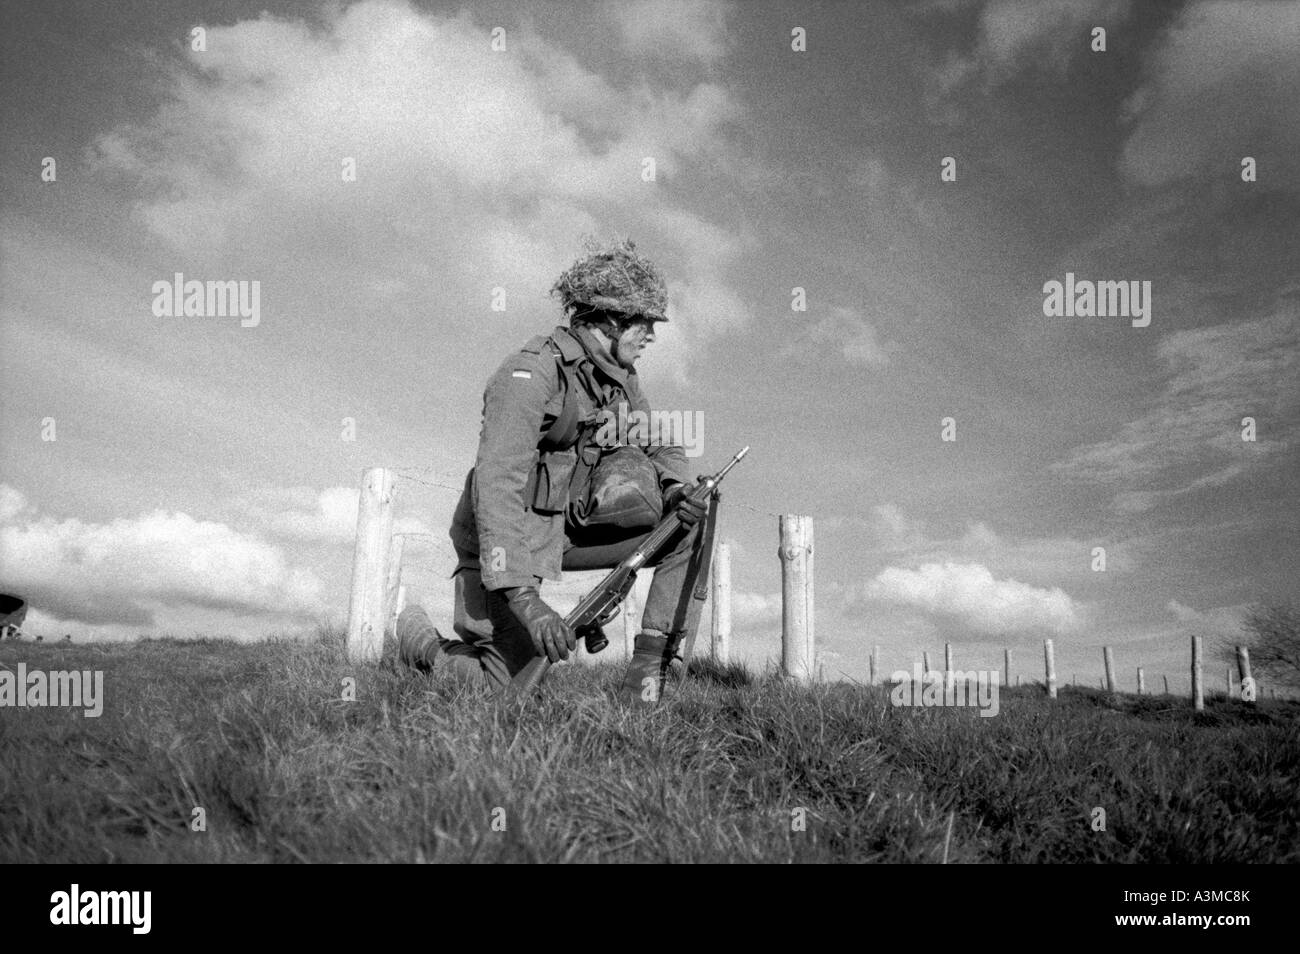 soldier - Stock Image